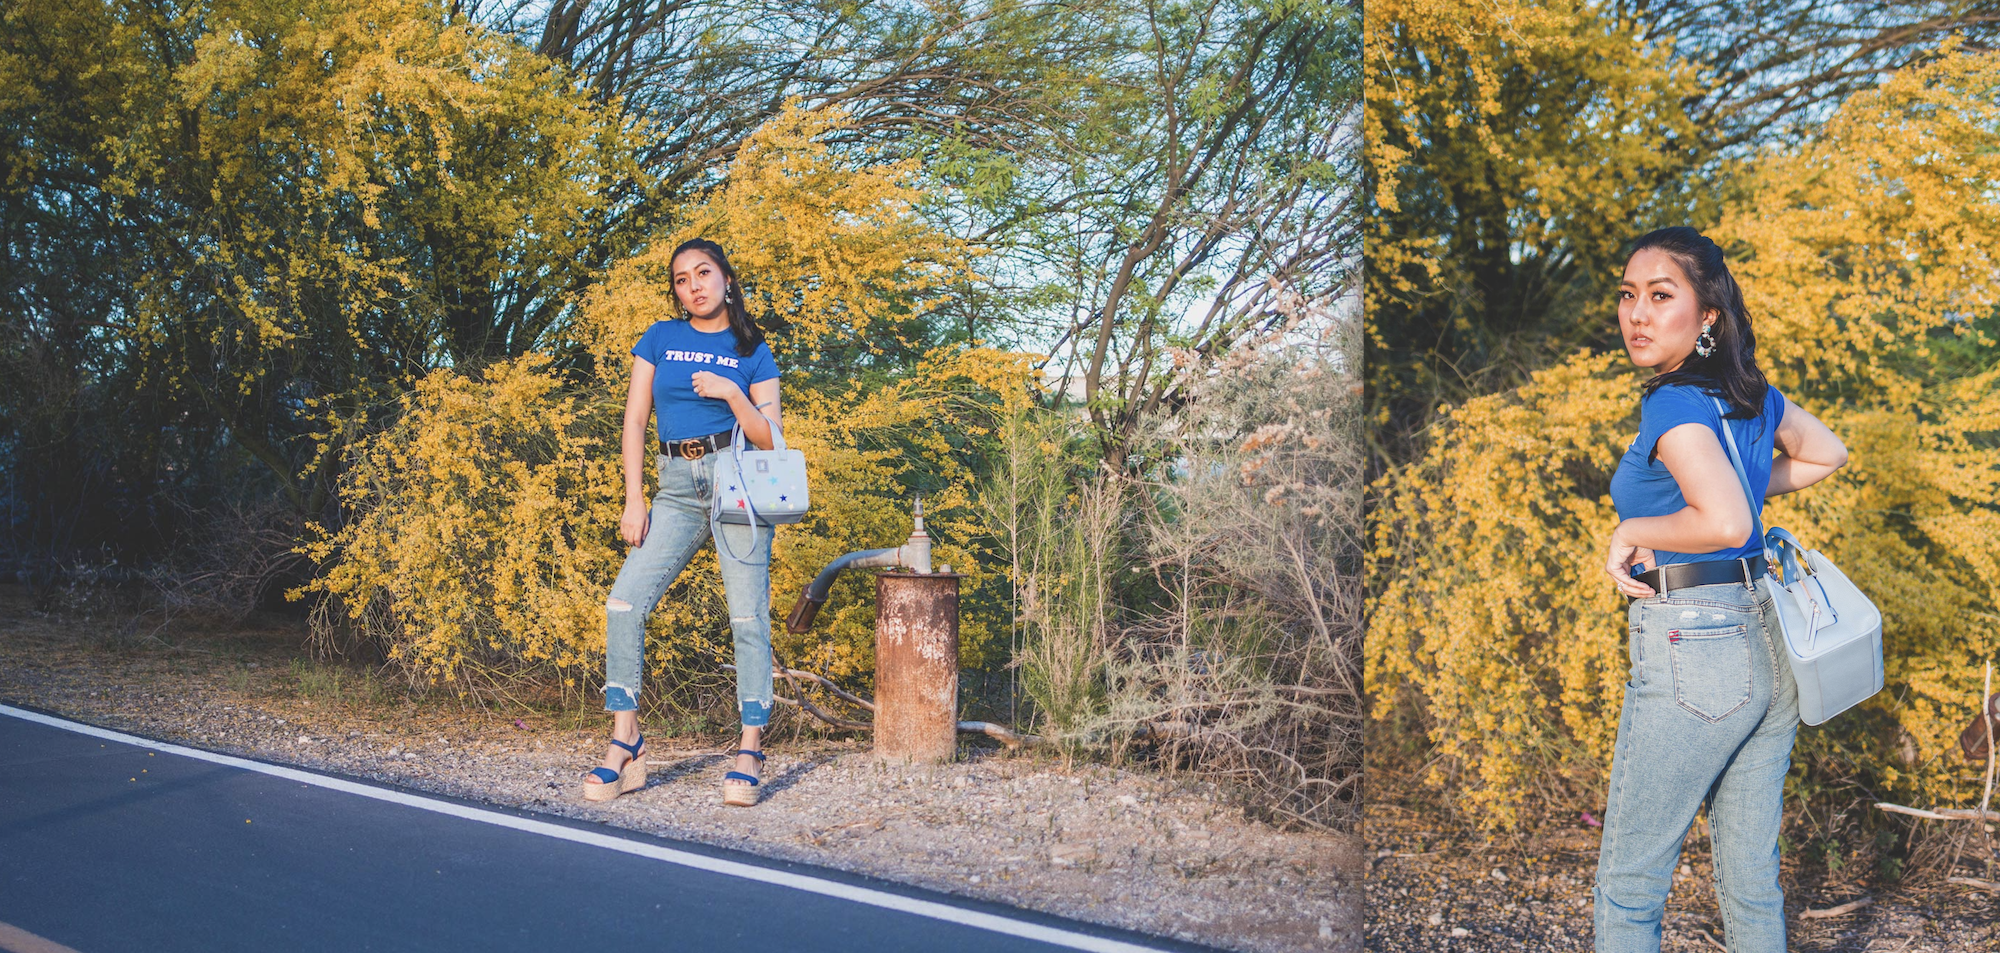 Arizona Fashion blogger Molly Larsen Wearing blue Trust Me Tee with blue denim jeans Dolce Vita Espadrilles carrying Blue star embroidered crossbody bag standing in front of yellow blooming trees